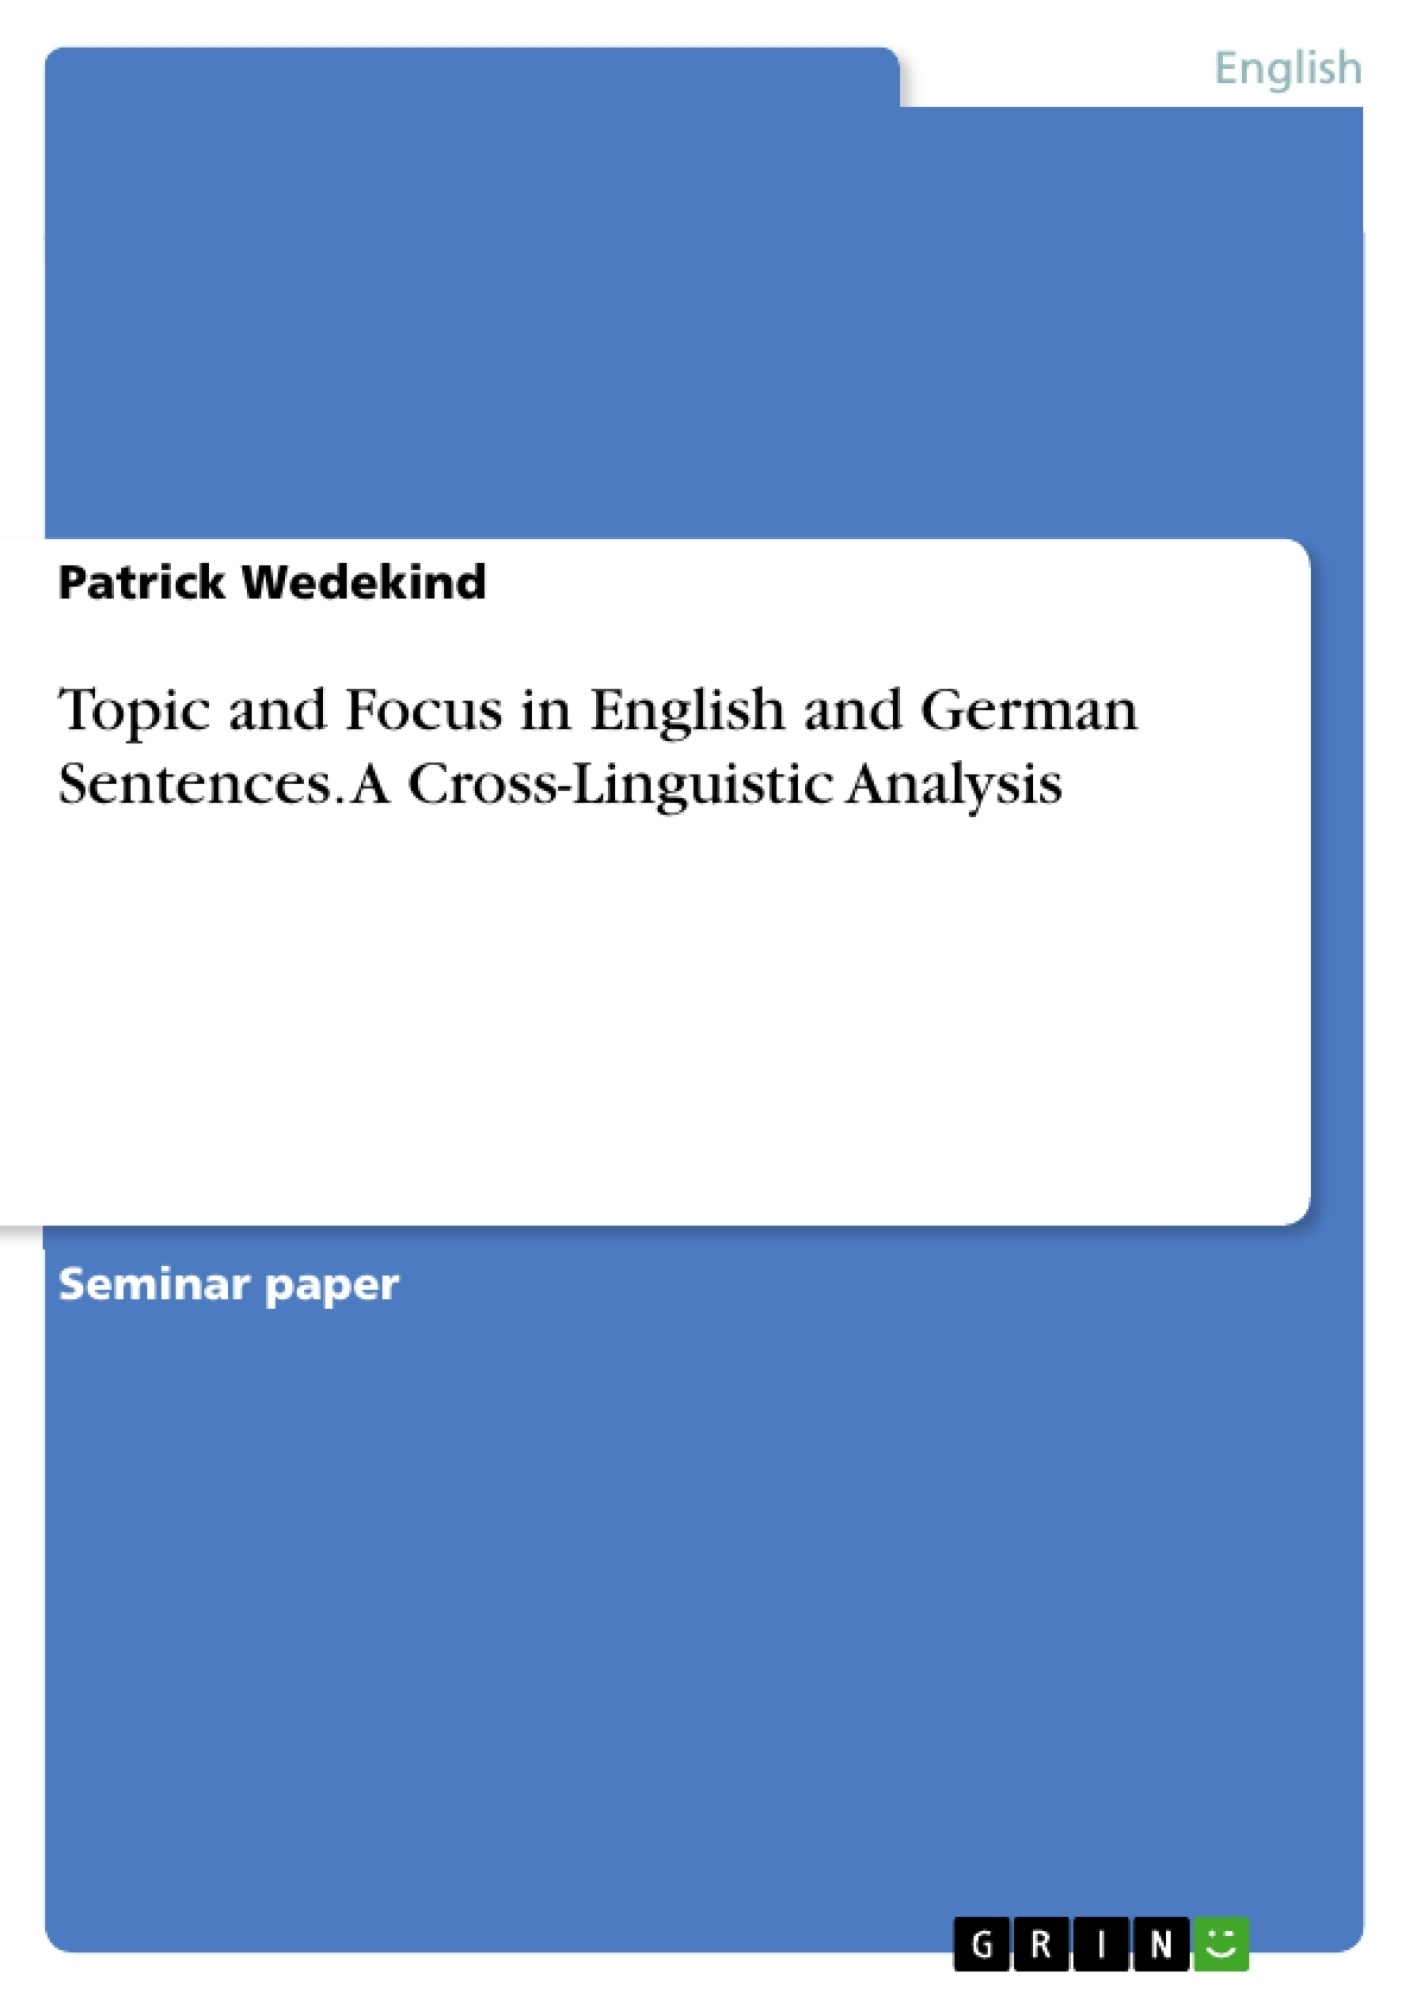 Title: Topic and Focus in English and German Sentences. A Cross-Linguistic Analysis